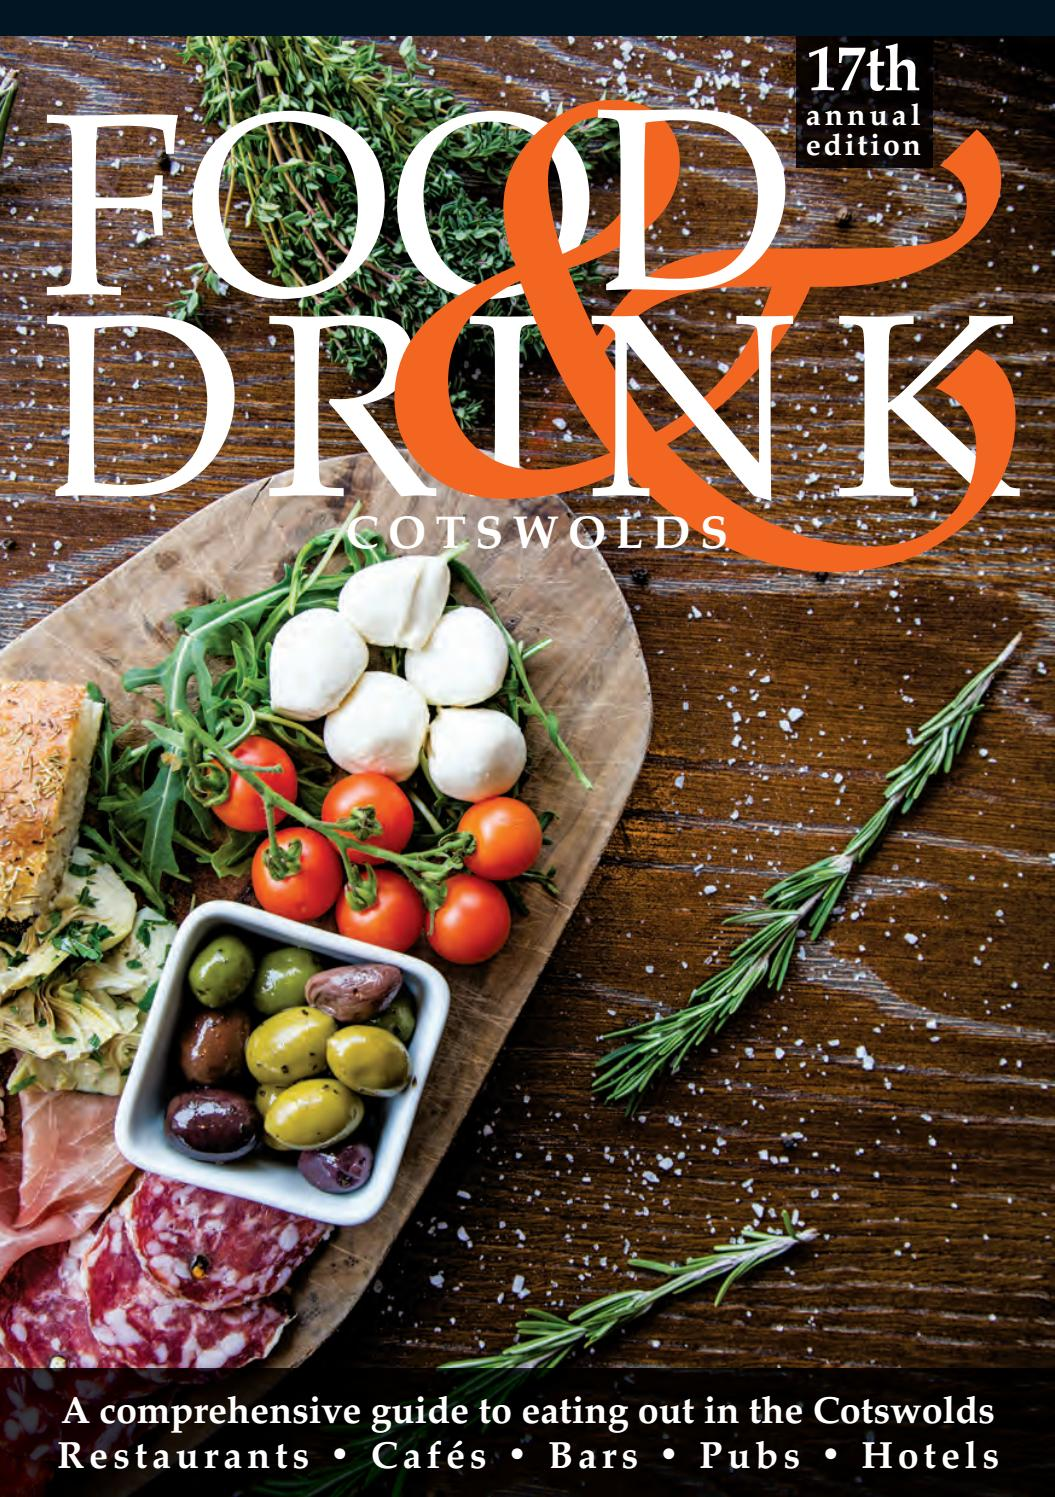 Cotswolds Food Drink Guide 2019 By Food Drink Guides Issuu